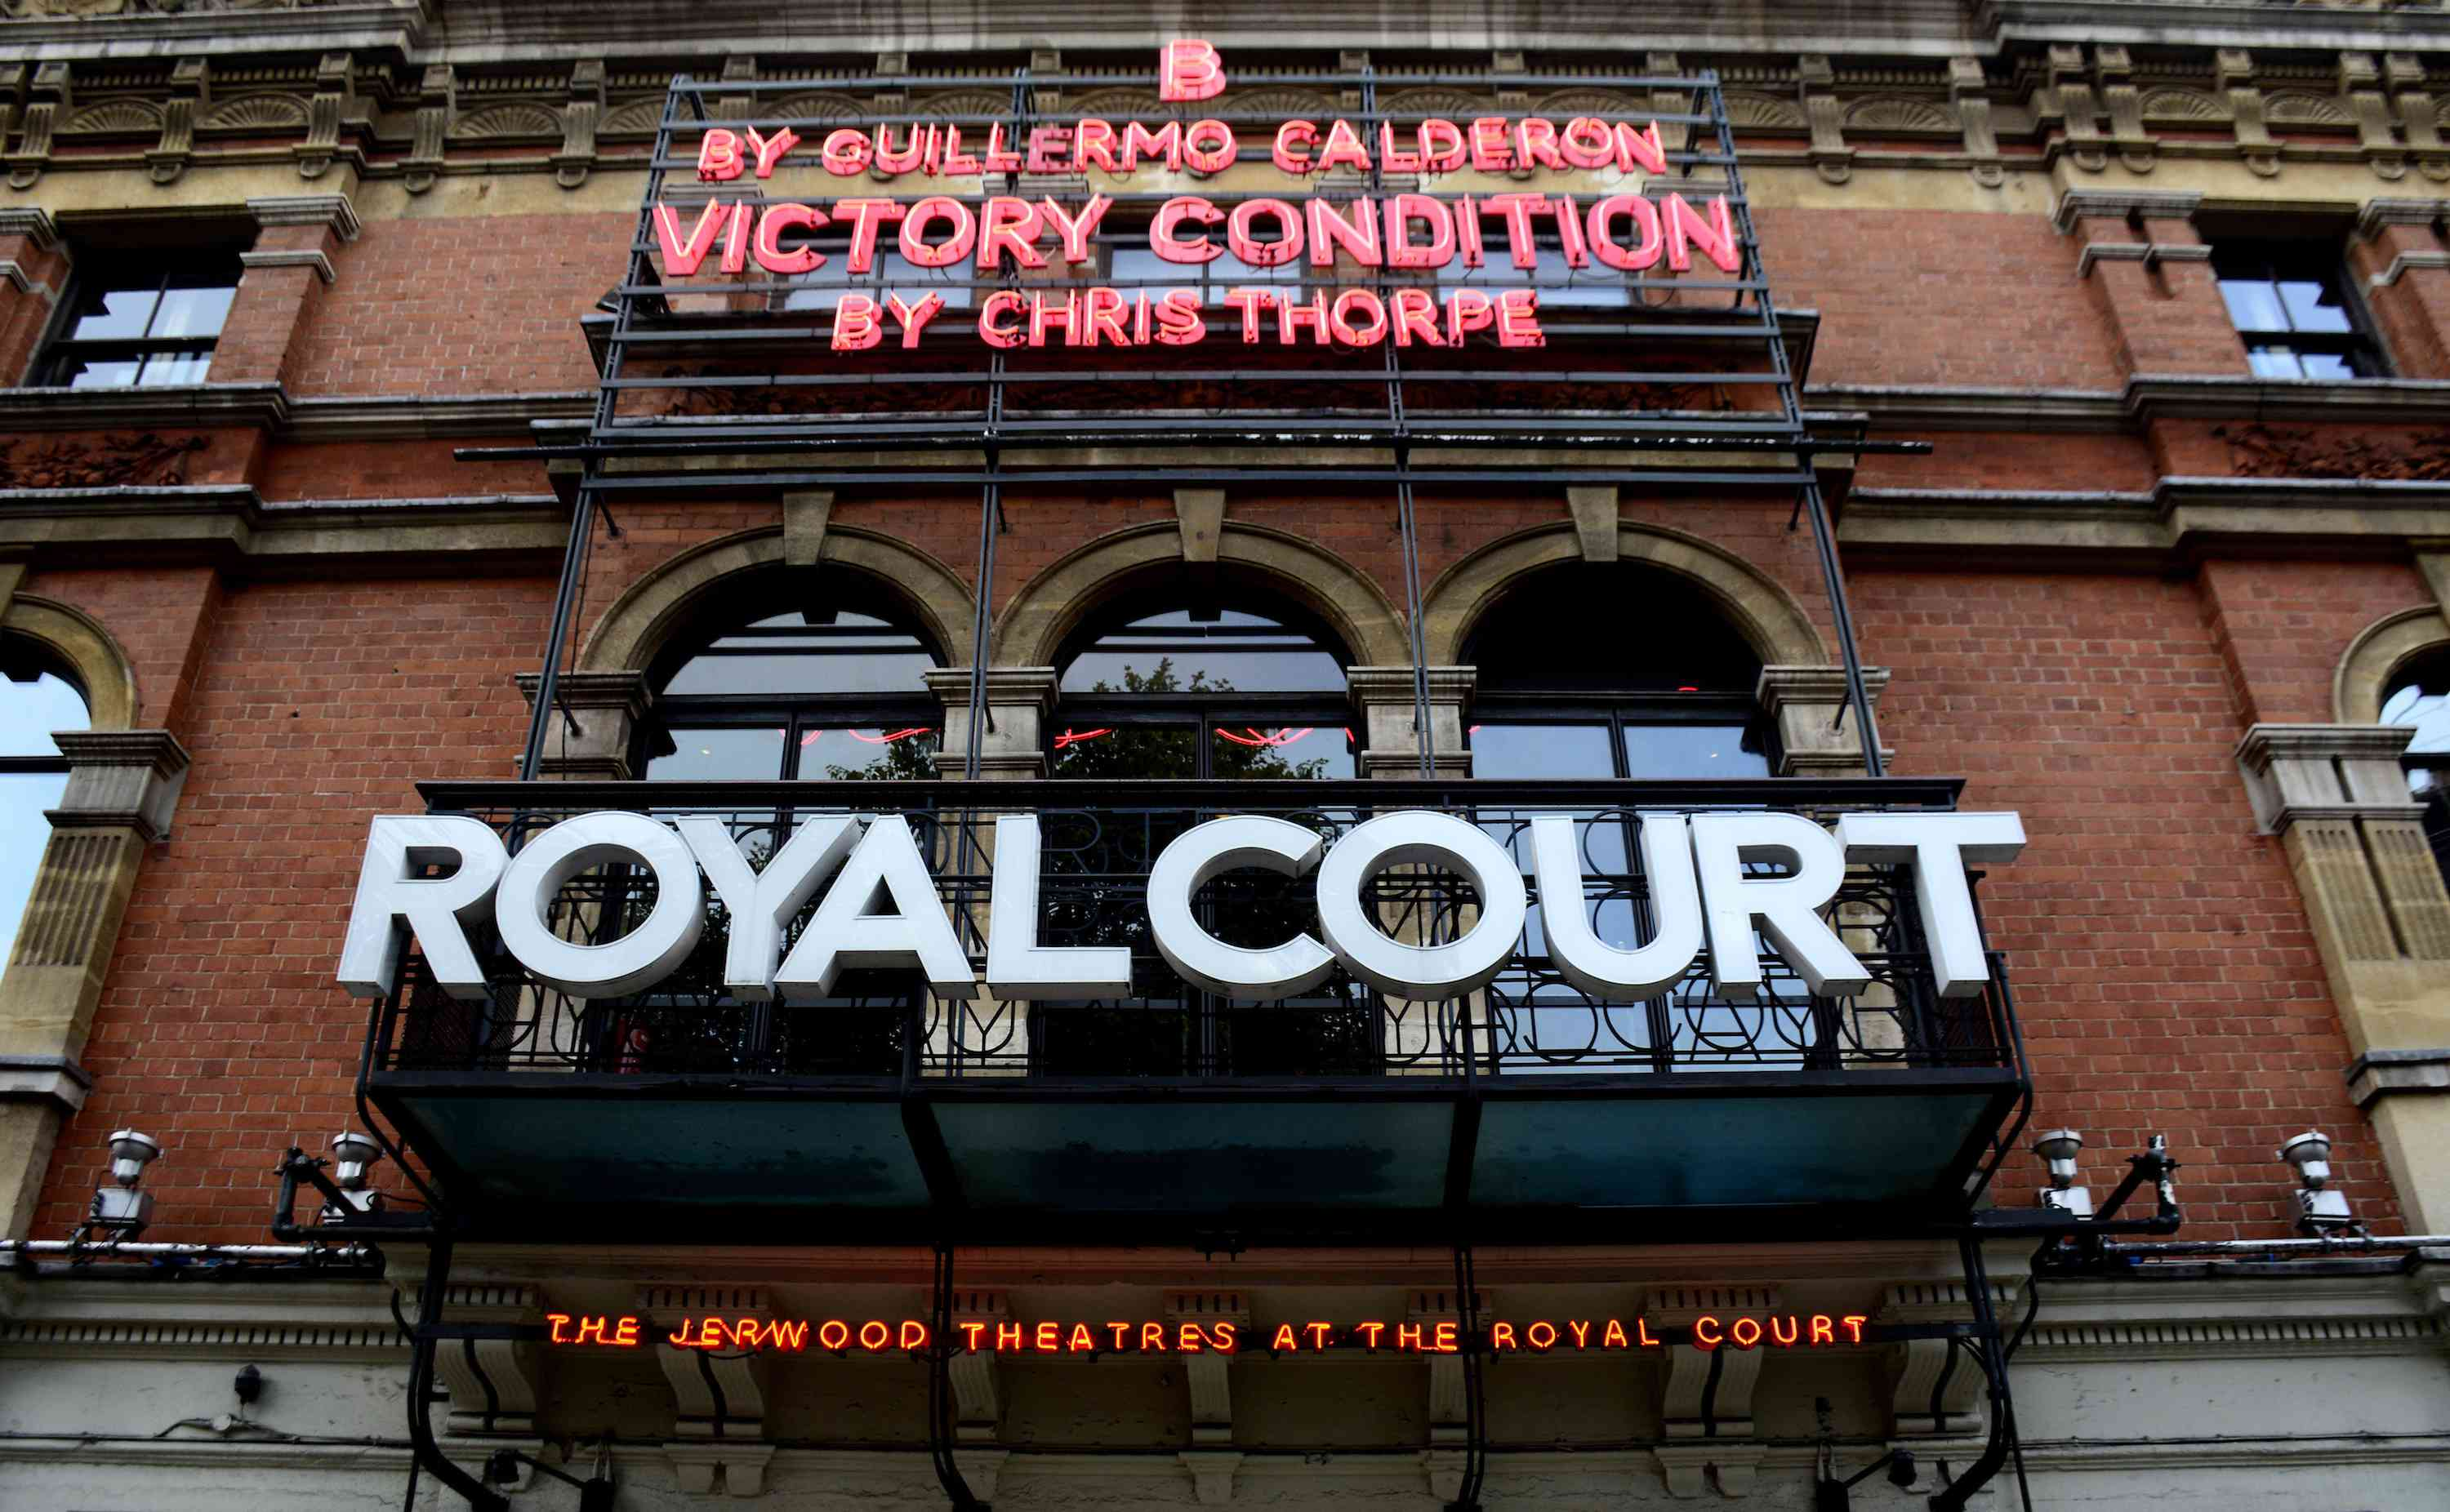 exterior of Royal Court Theatre